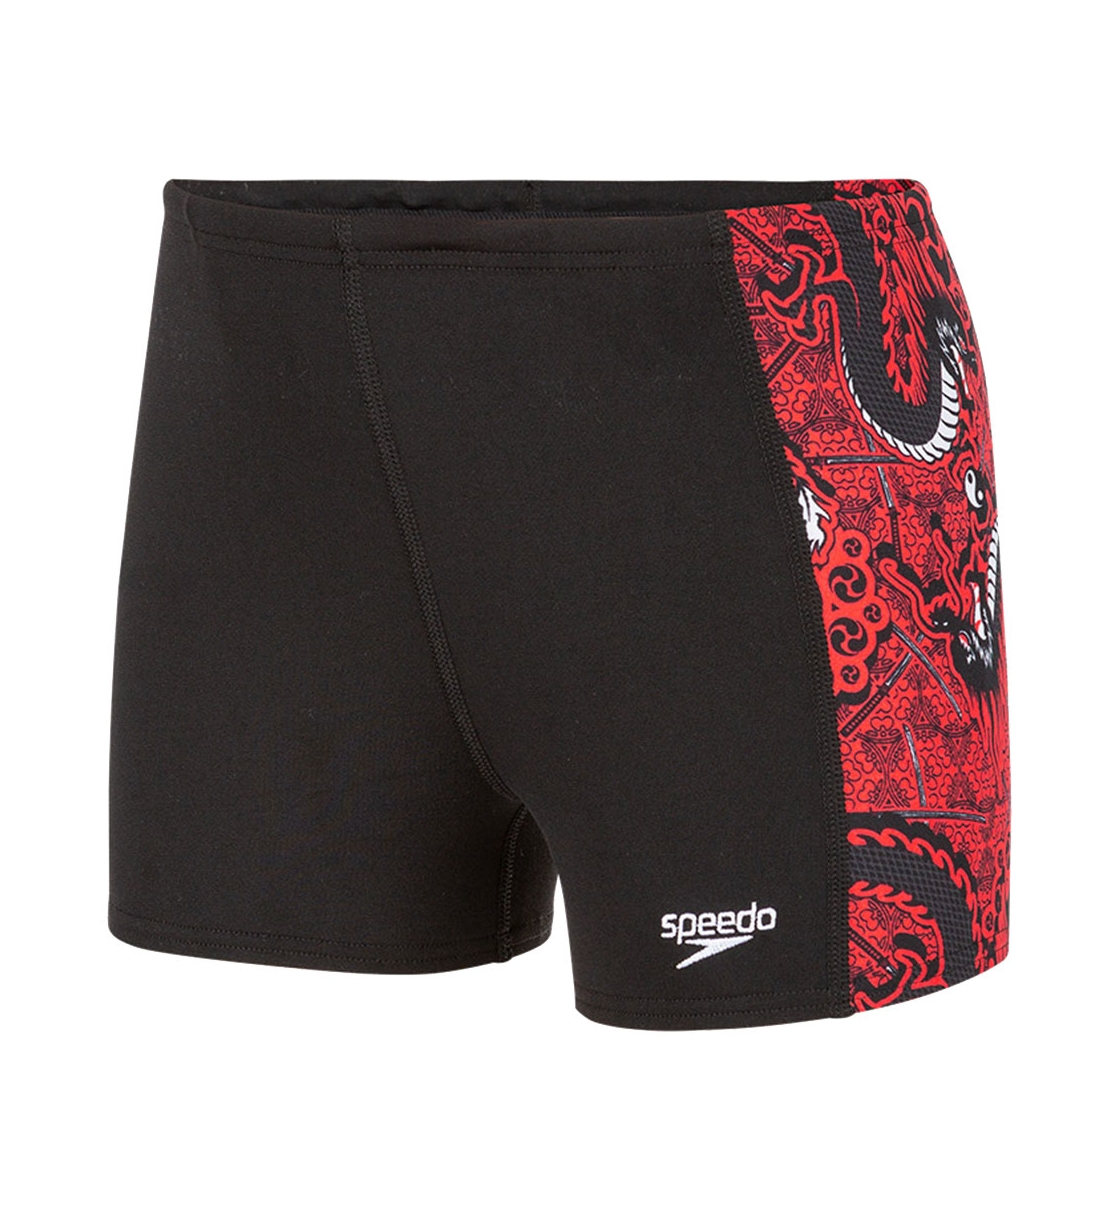 Speedo Fw19 Dragonzen Allover Panel Aquashort